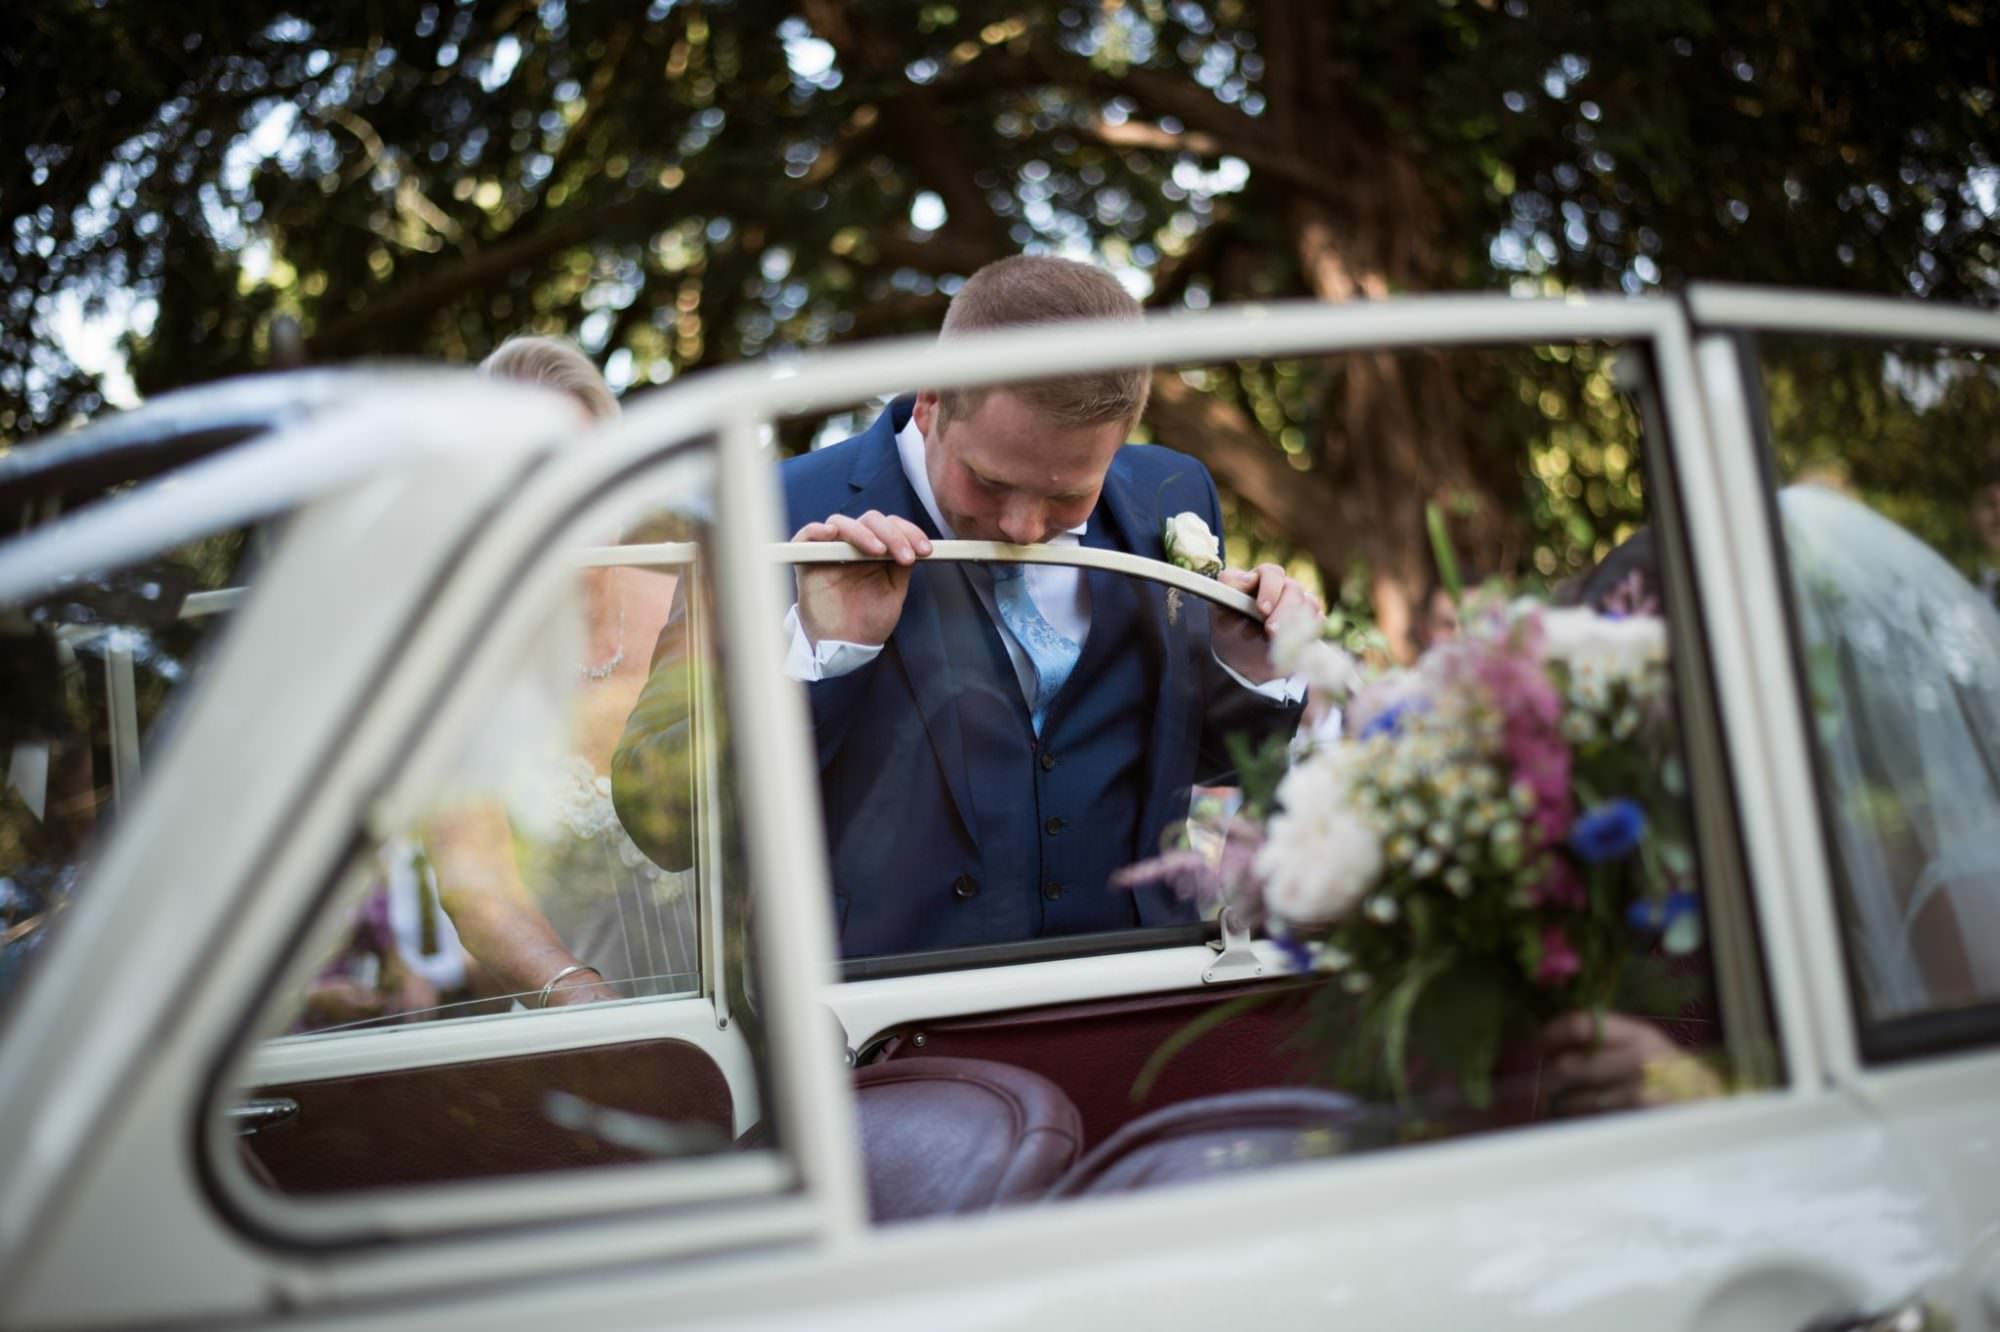 Morris Minor at Dorset Wedding